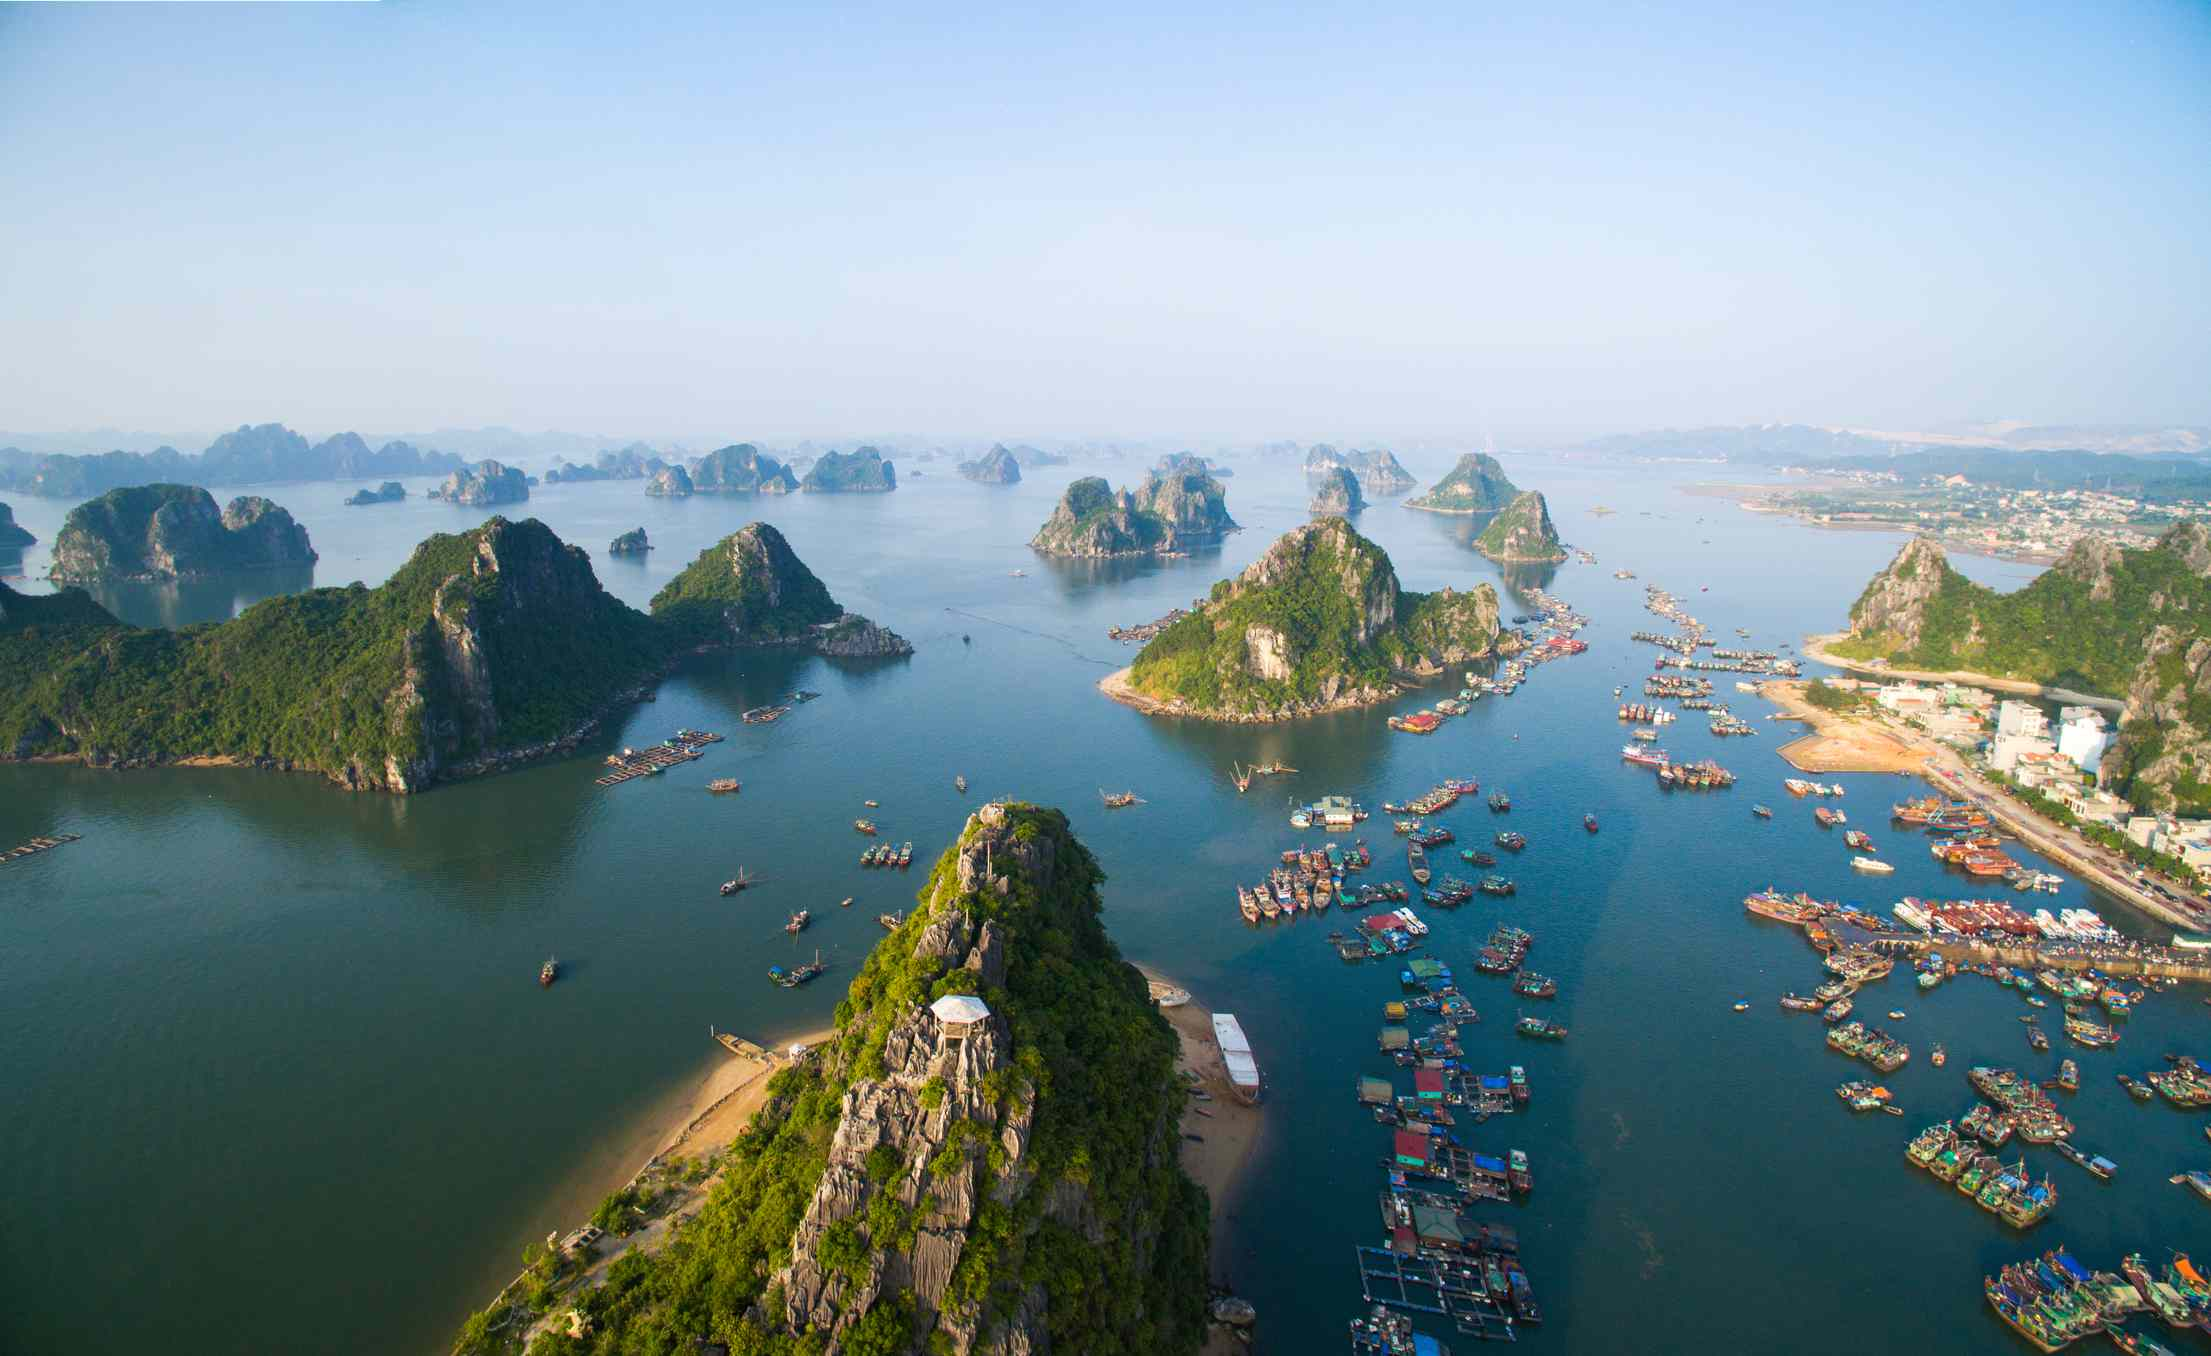 5 Interesting Attractions in Vietnam, from Ha Long Bay to The Charming Sand Dunes